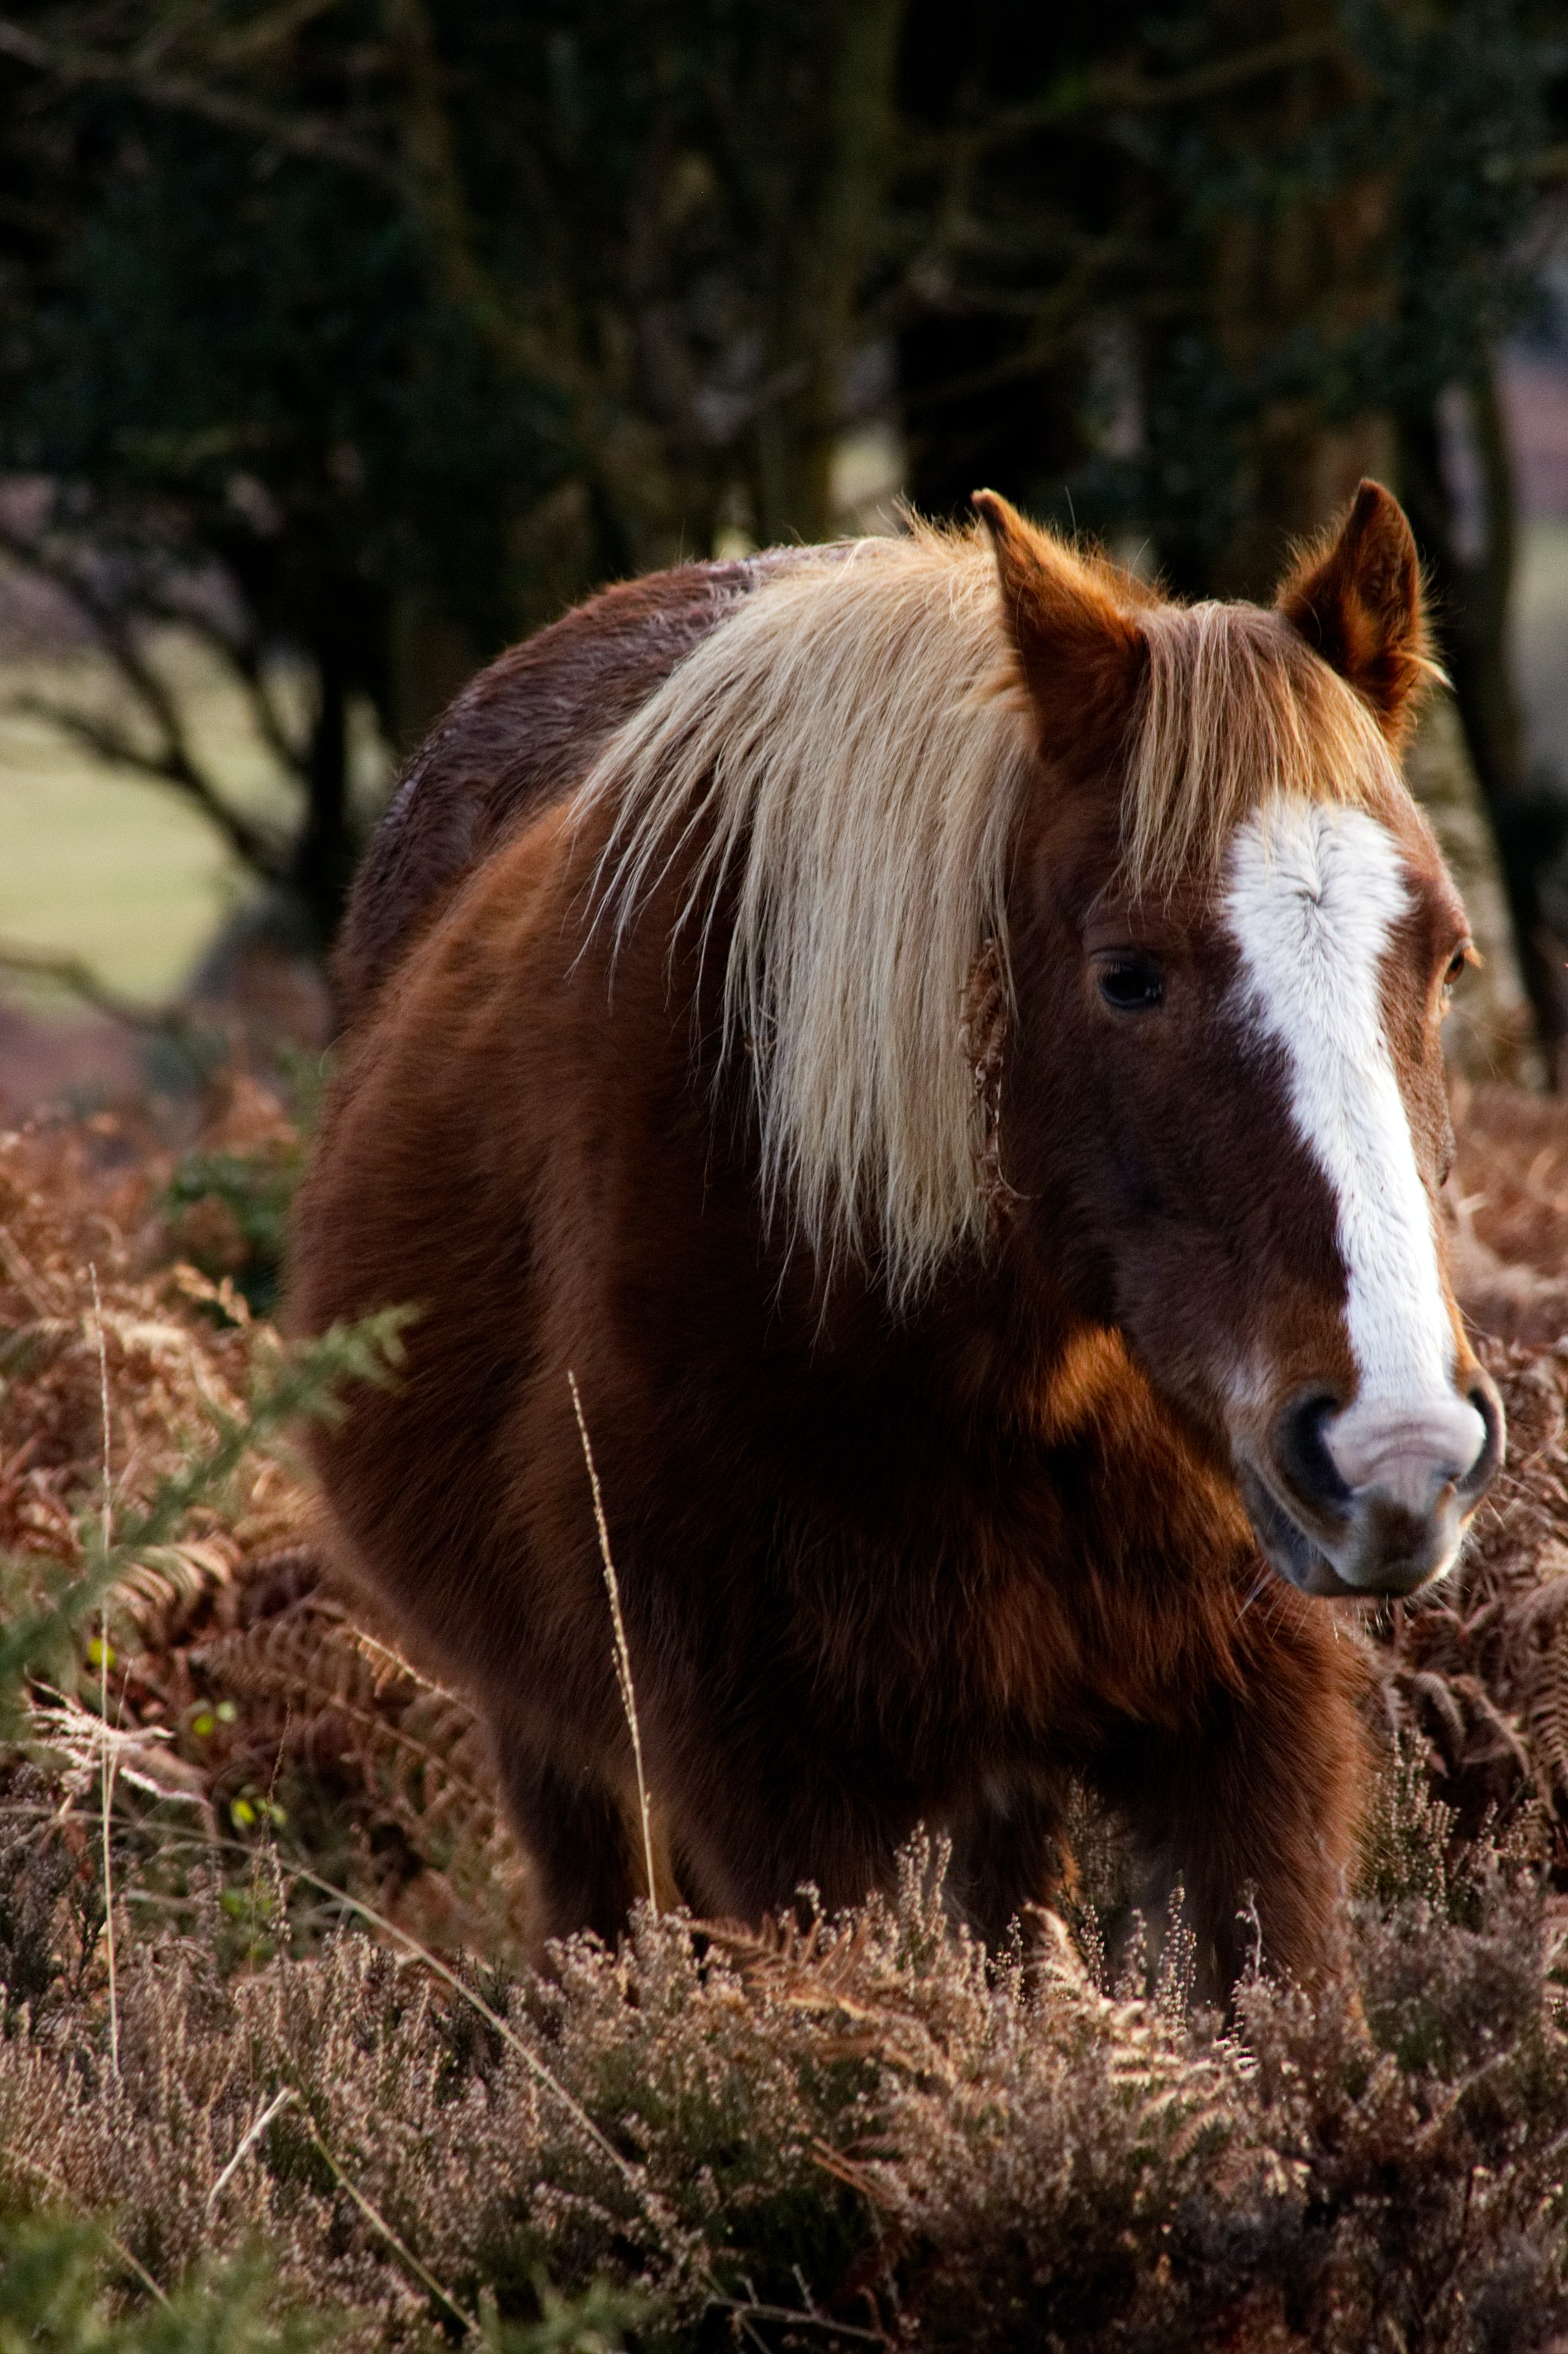 A horse with a fluffy brown coat and a white marking on its head standing in dry ferns